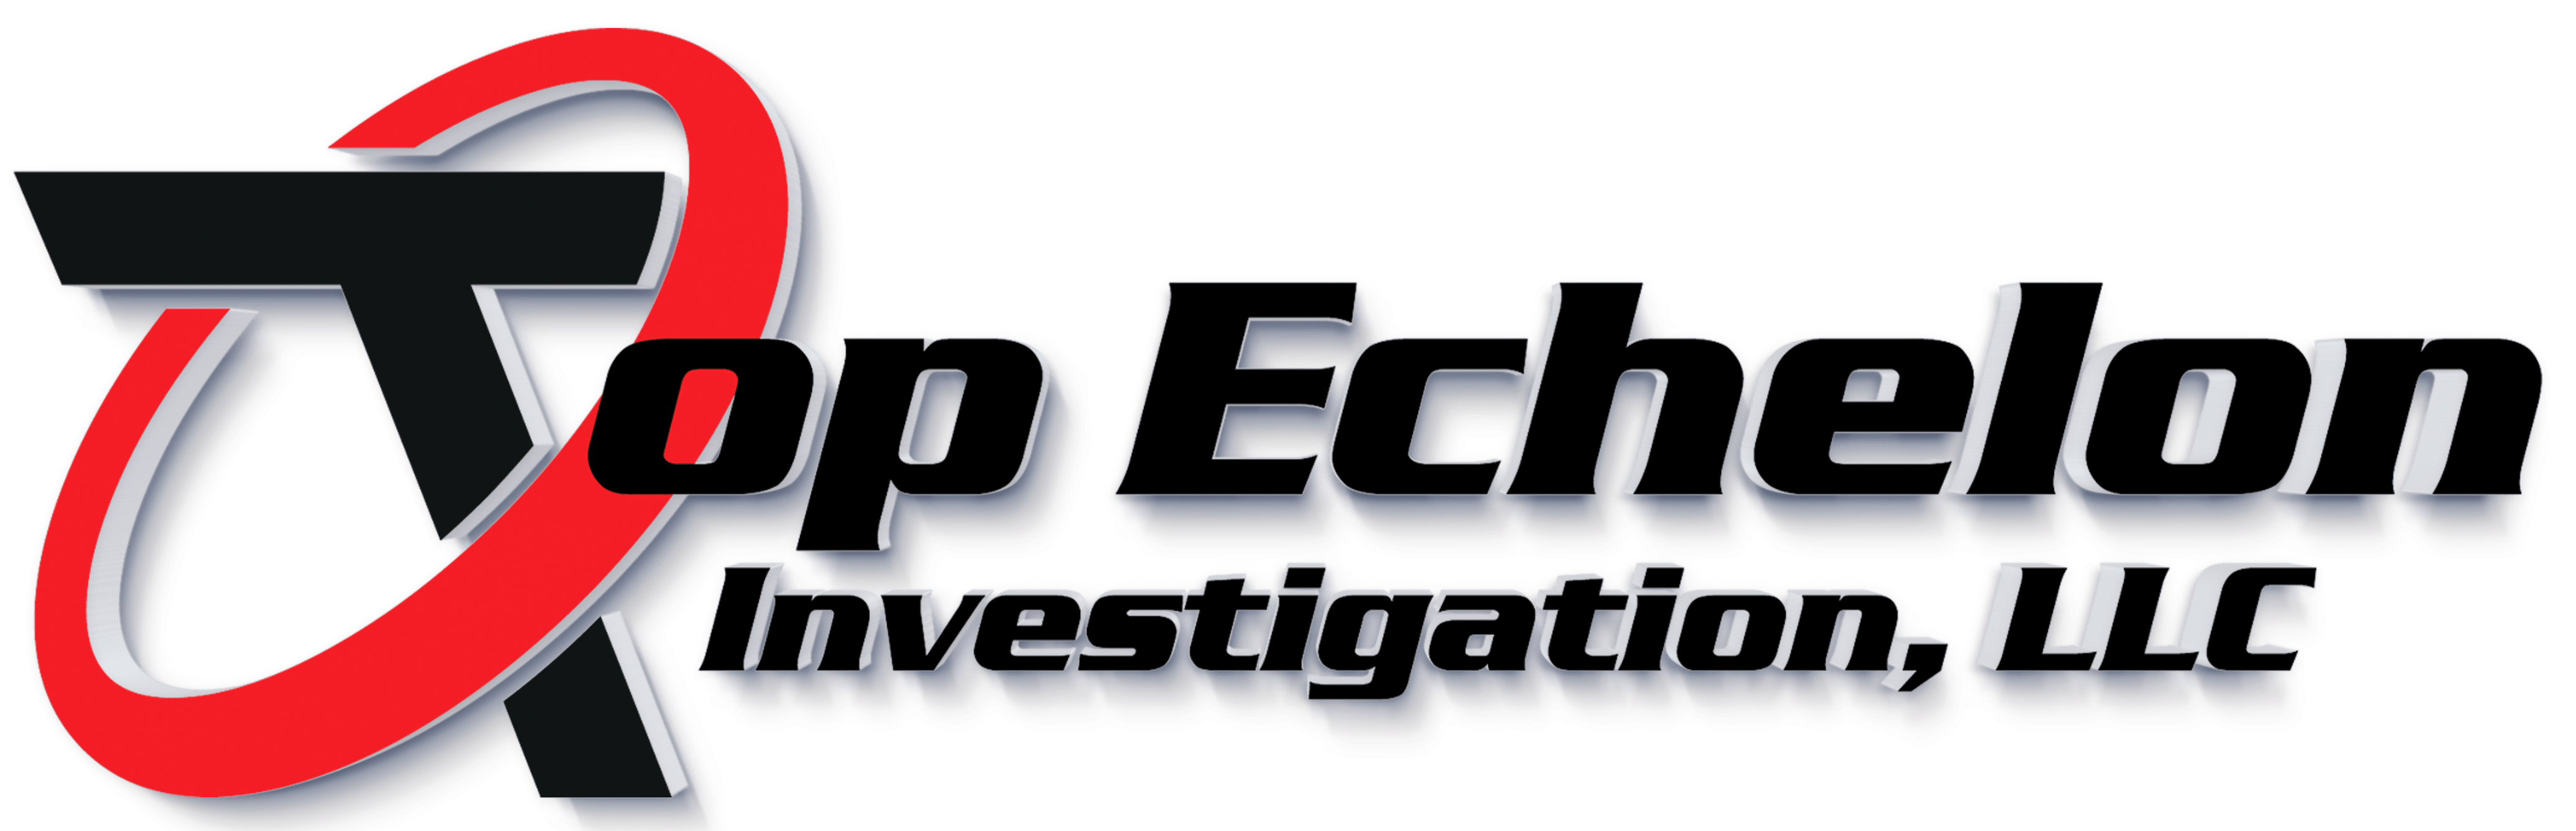 Top Echelon Investigation, LLC Is a Full-Service Investigation Agency Based out of Opelousas, LA